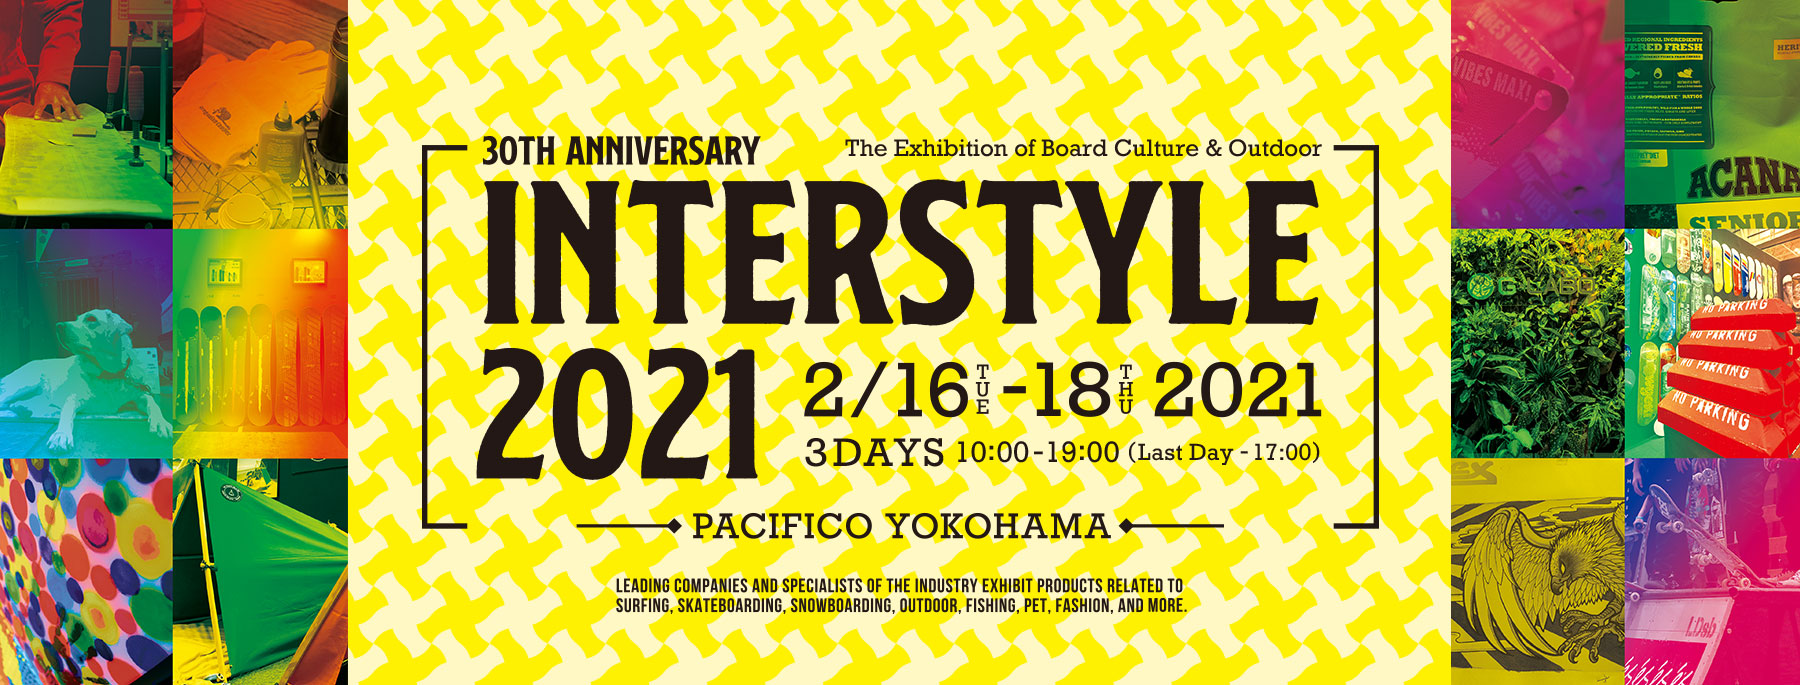 INTERSTYLE 2021 in パシフィコ横浜 出展のお知らせ